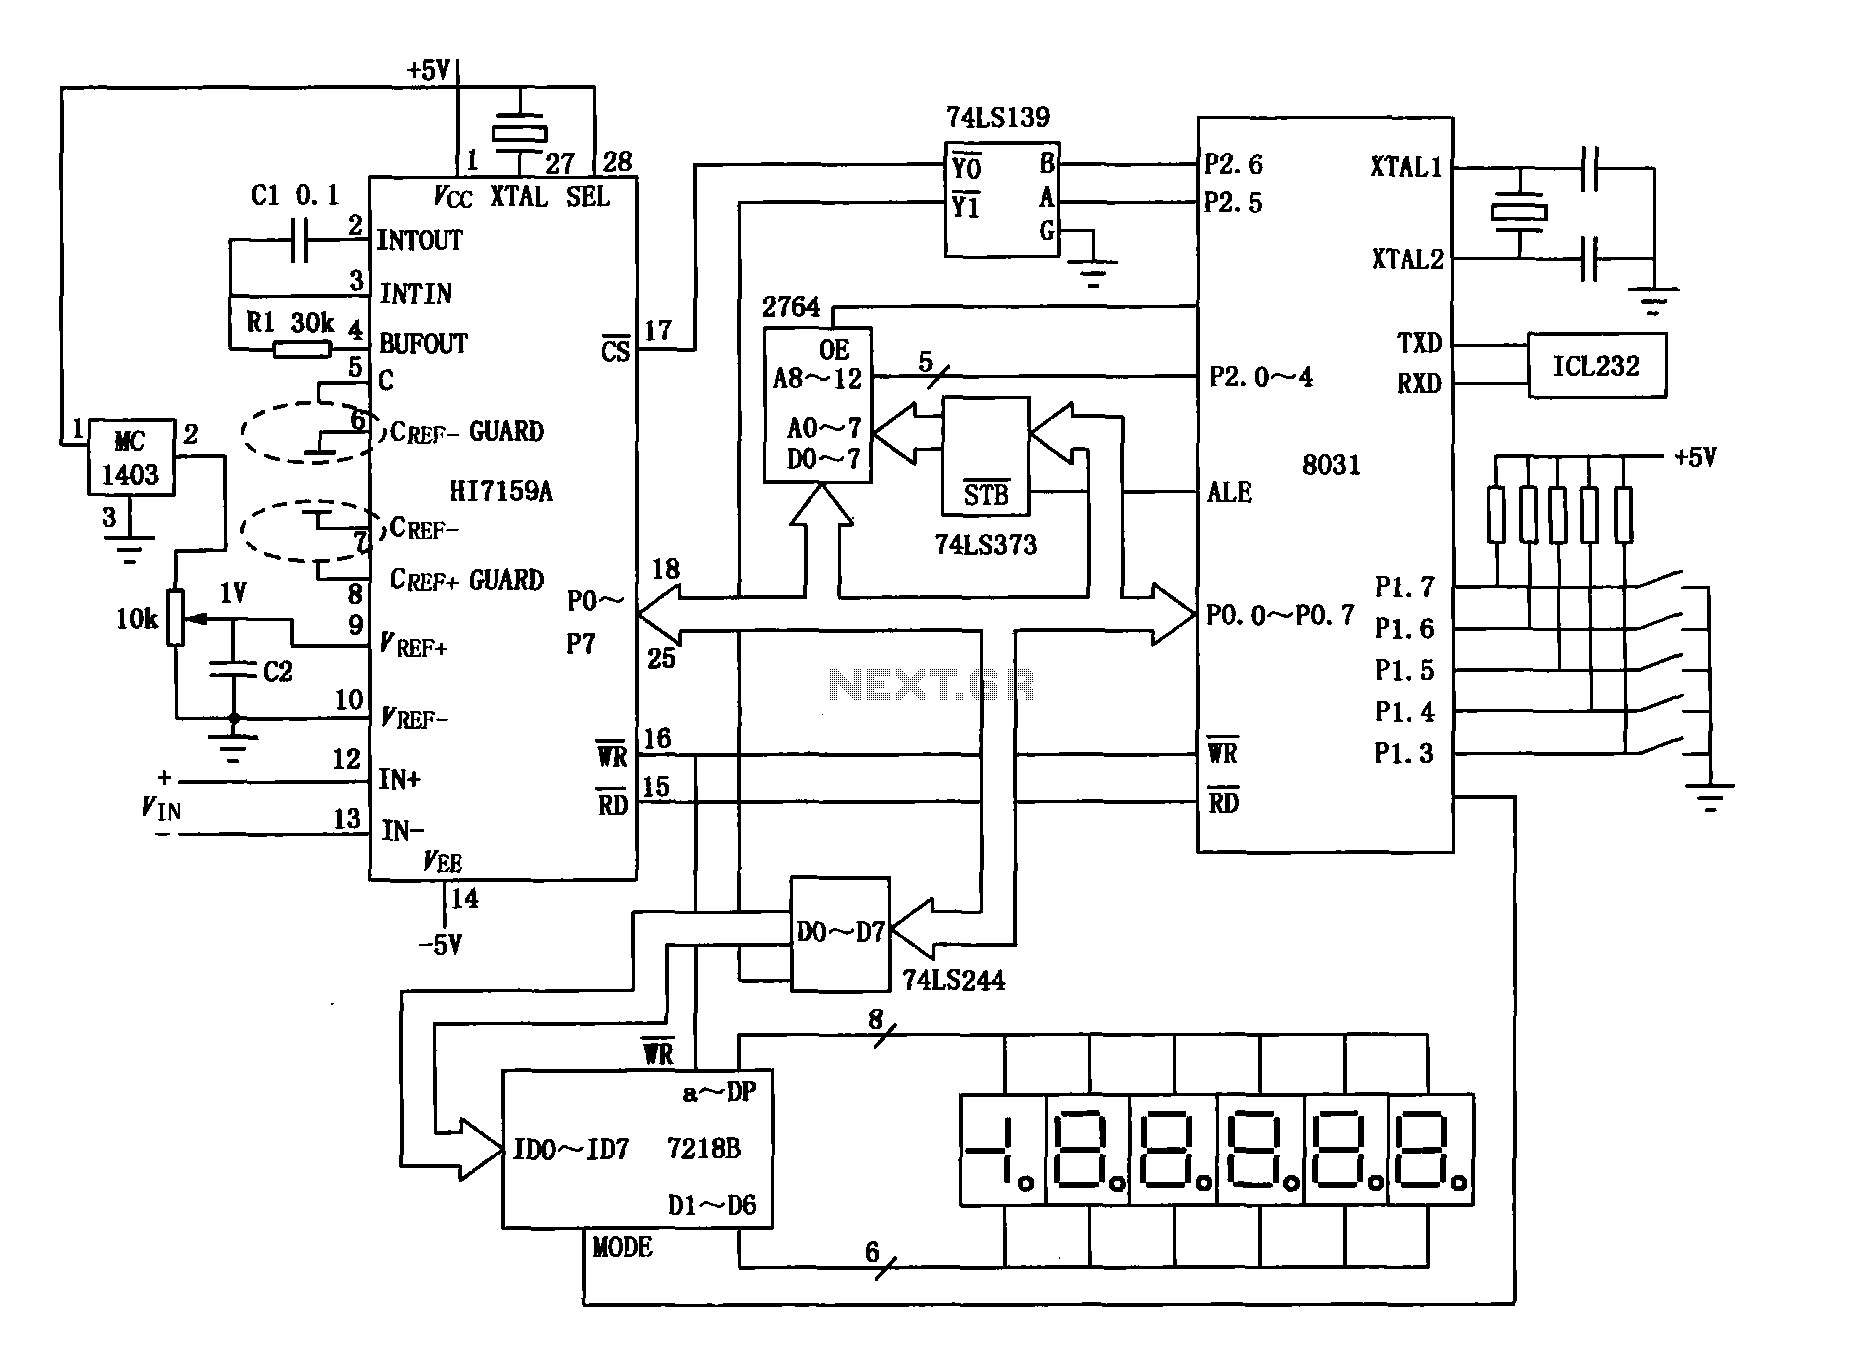 Intelligent digital voltmeter circuit HI7159A and 8031 - schematic